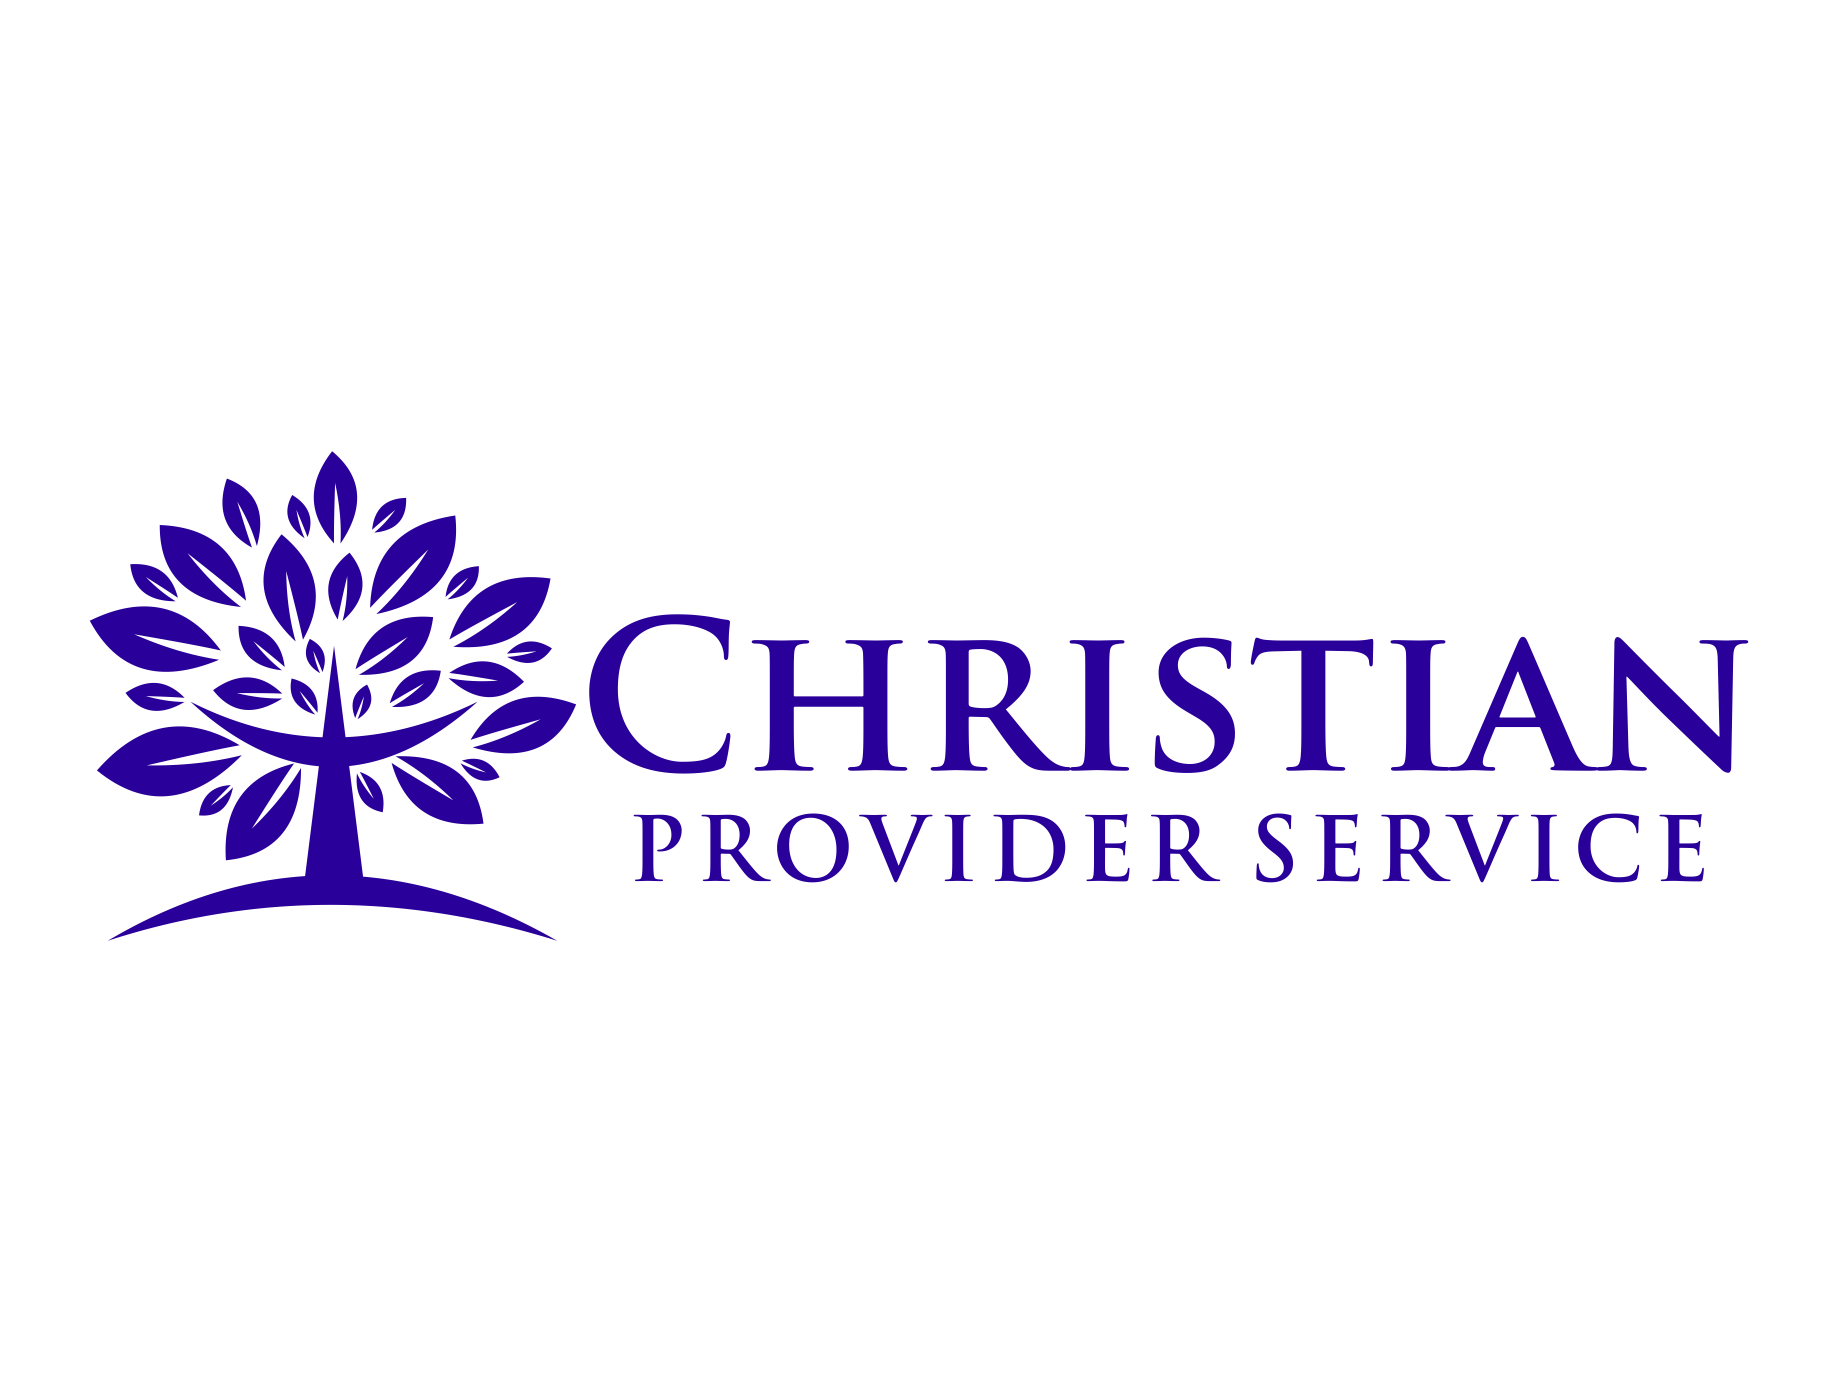 Christian Provider Service Announces Job Opportunities for Caregivers